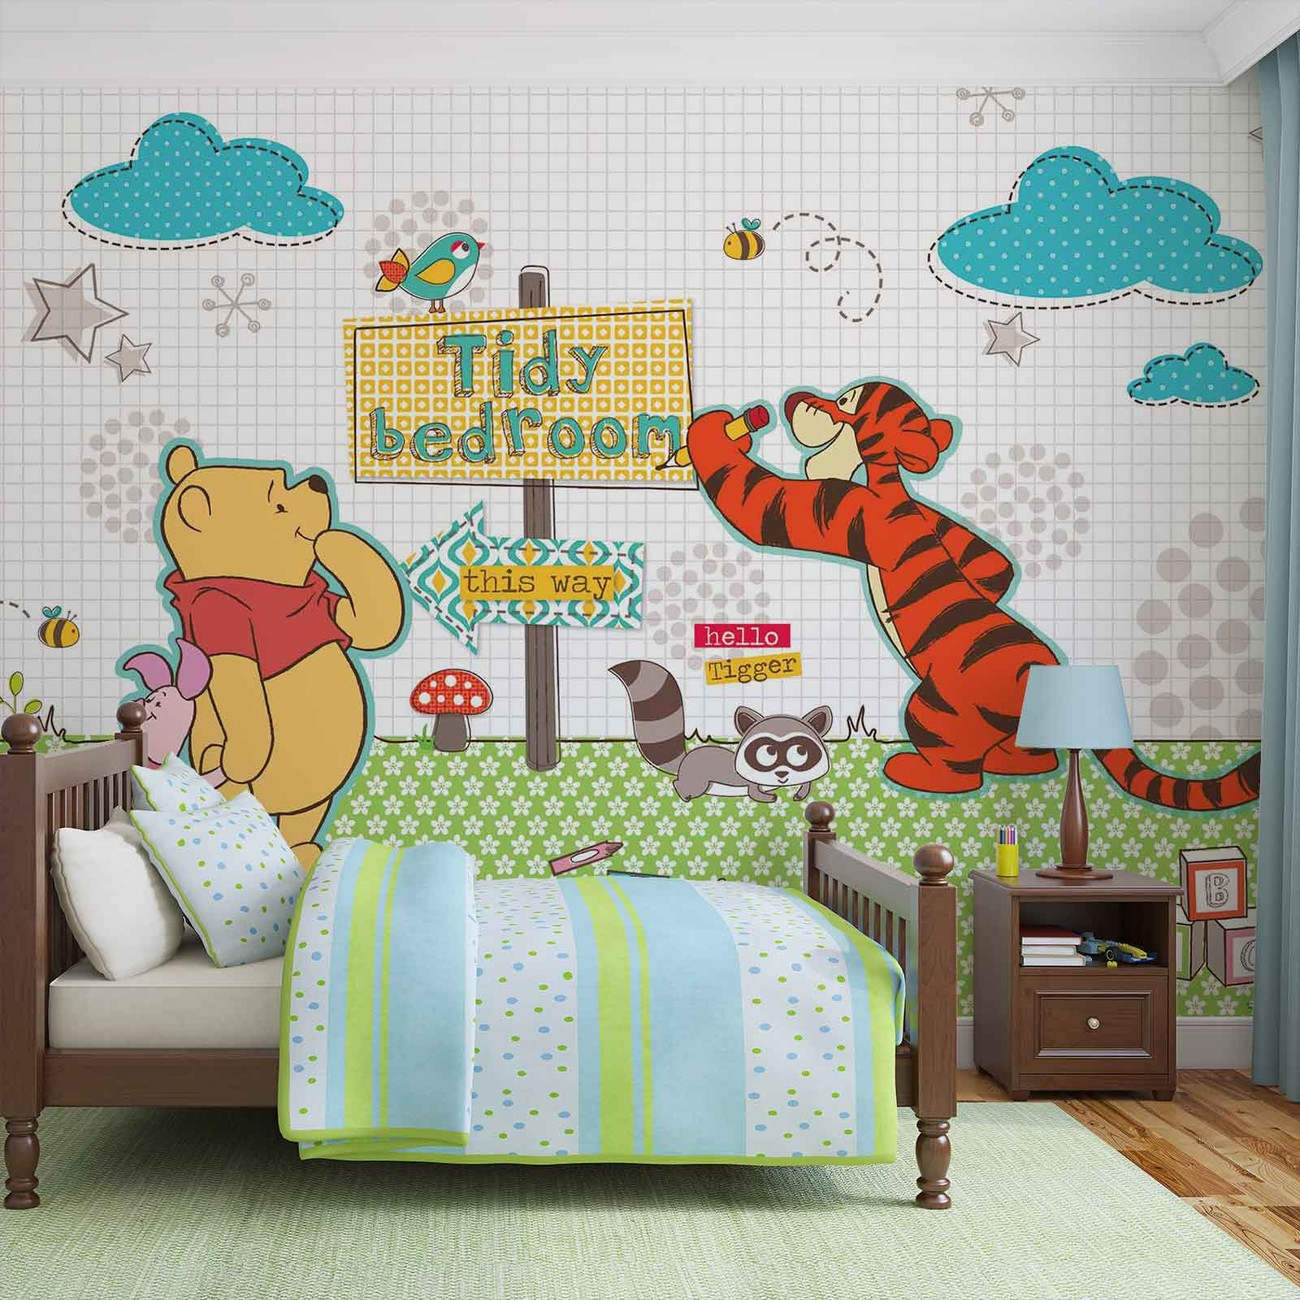 disney winnie pooh tapeta zidne tapete. Black Bedroom Furniture Sets. Home Design Ideas